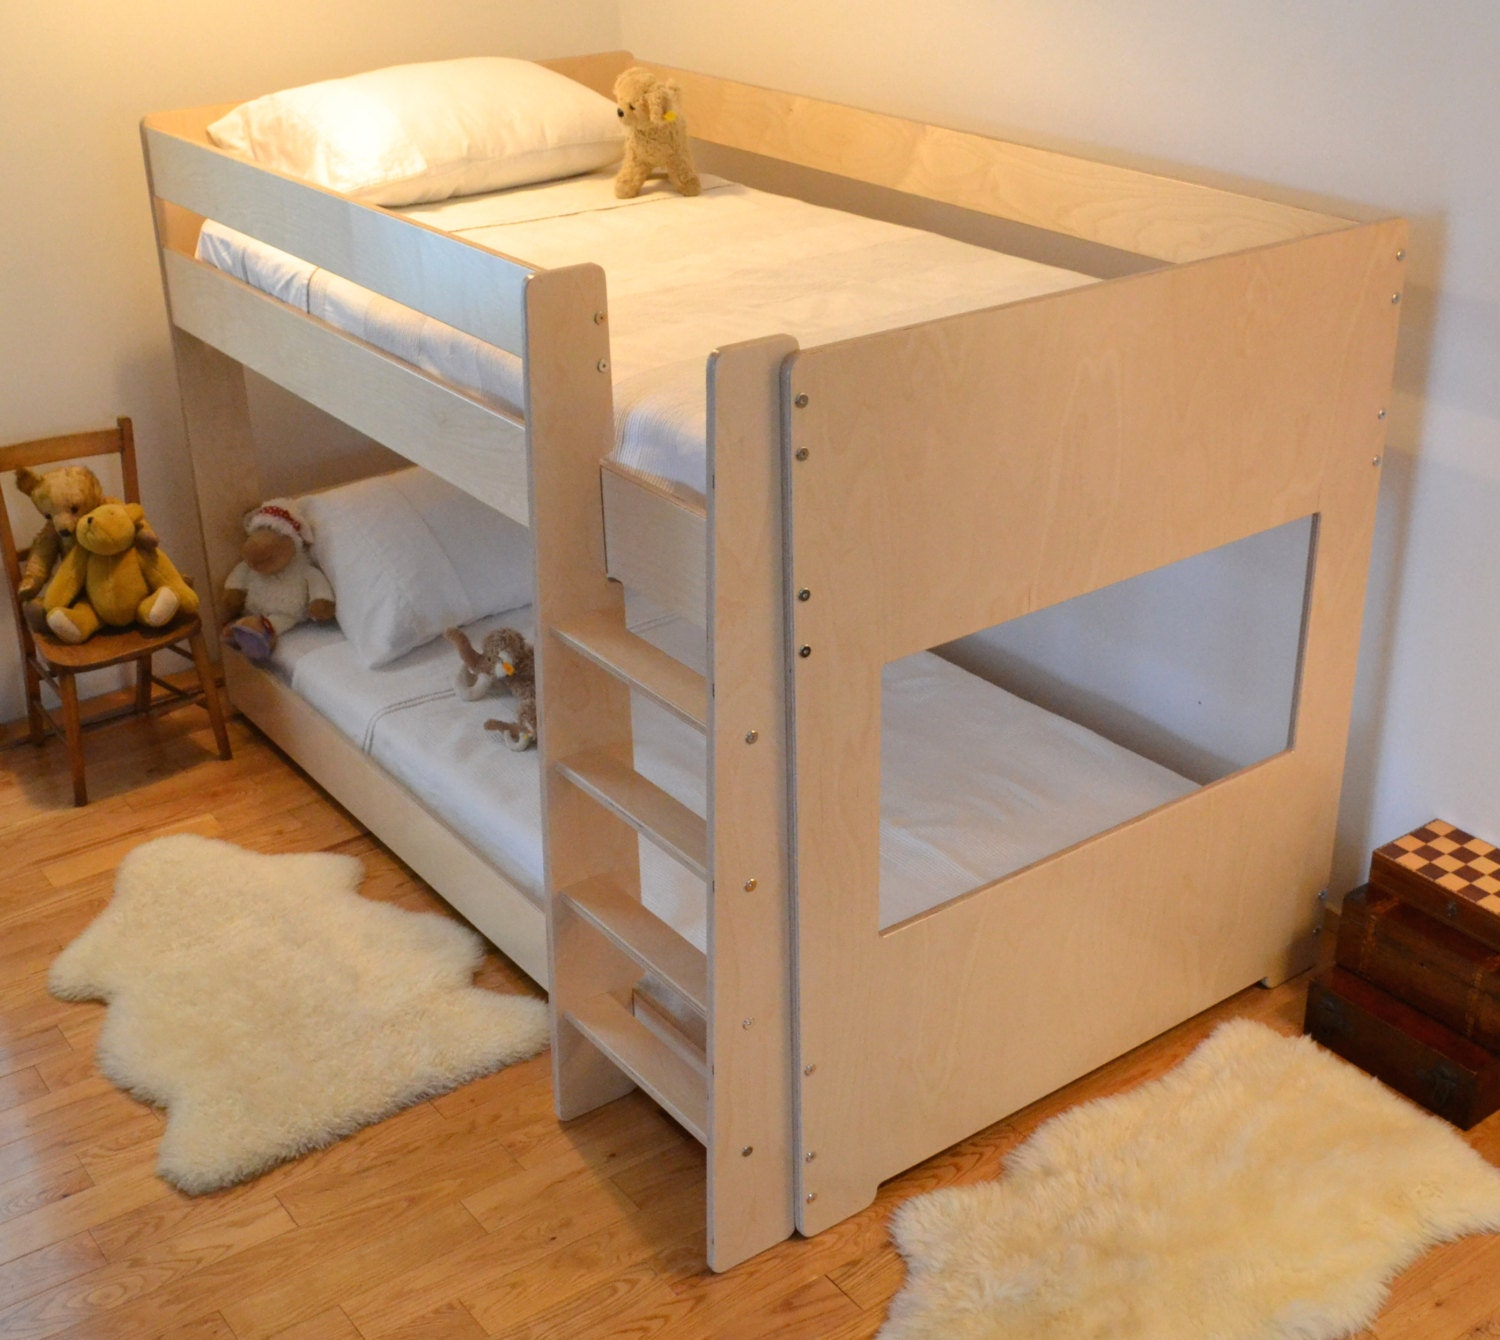 low bunk bed 48 high 12160 | il fullxfull 901690925 4dbb